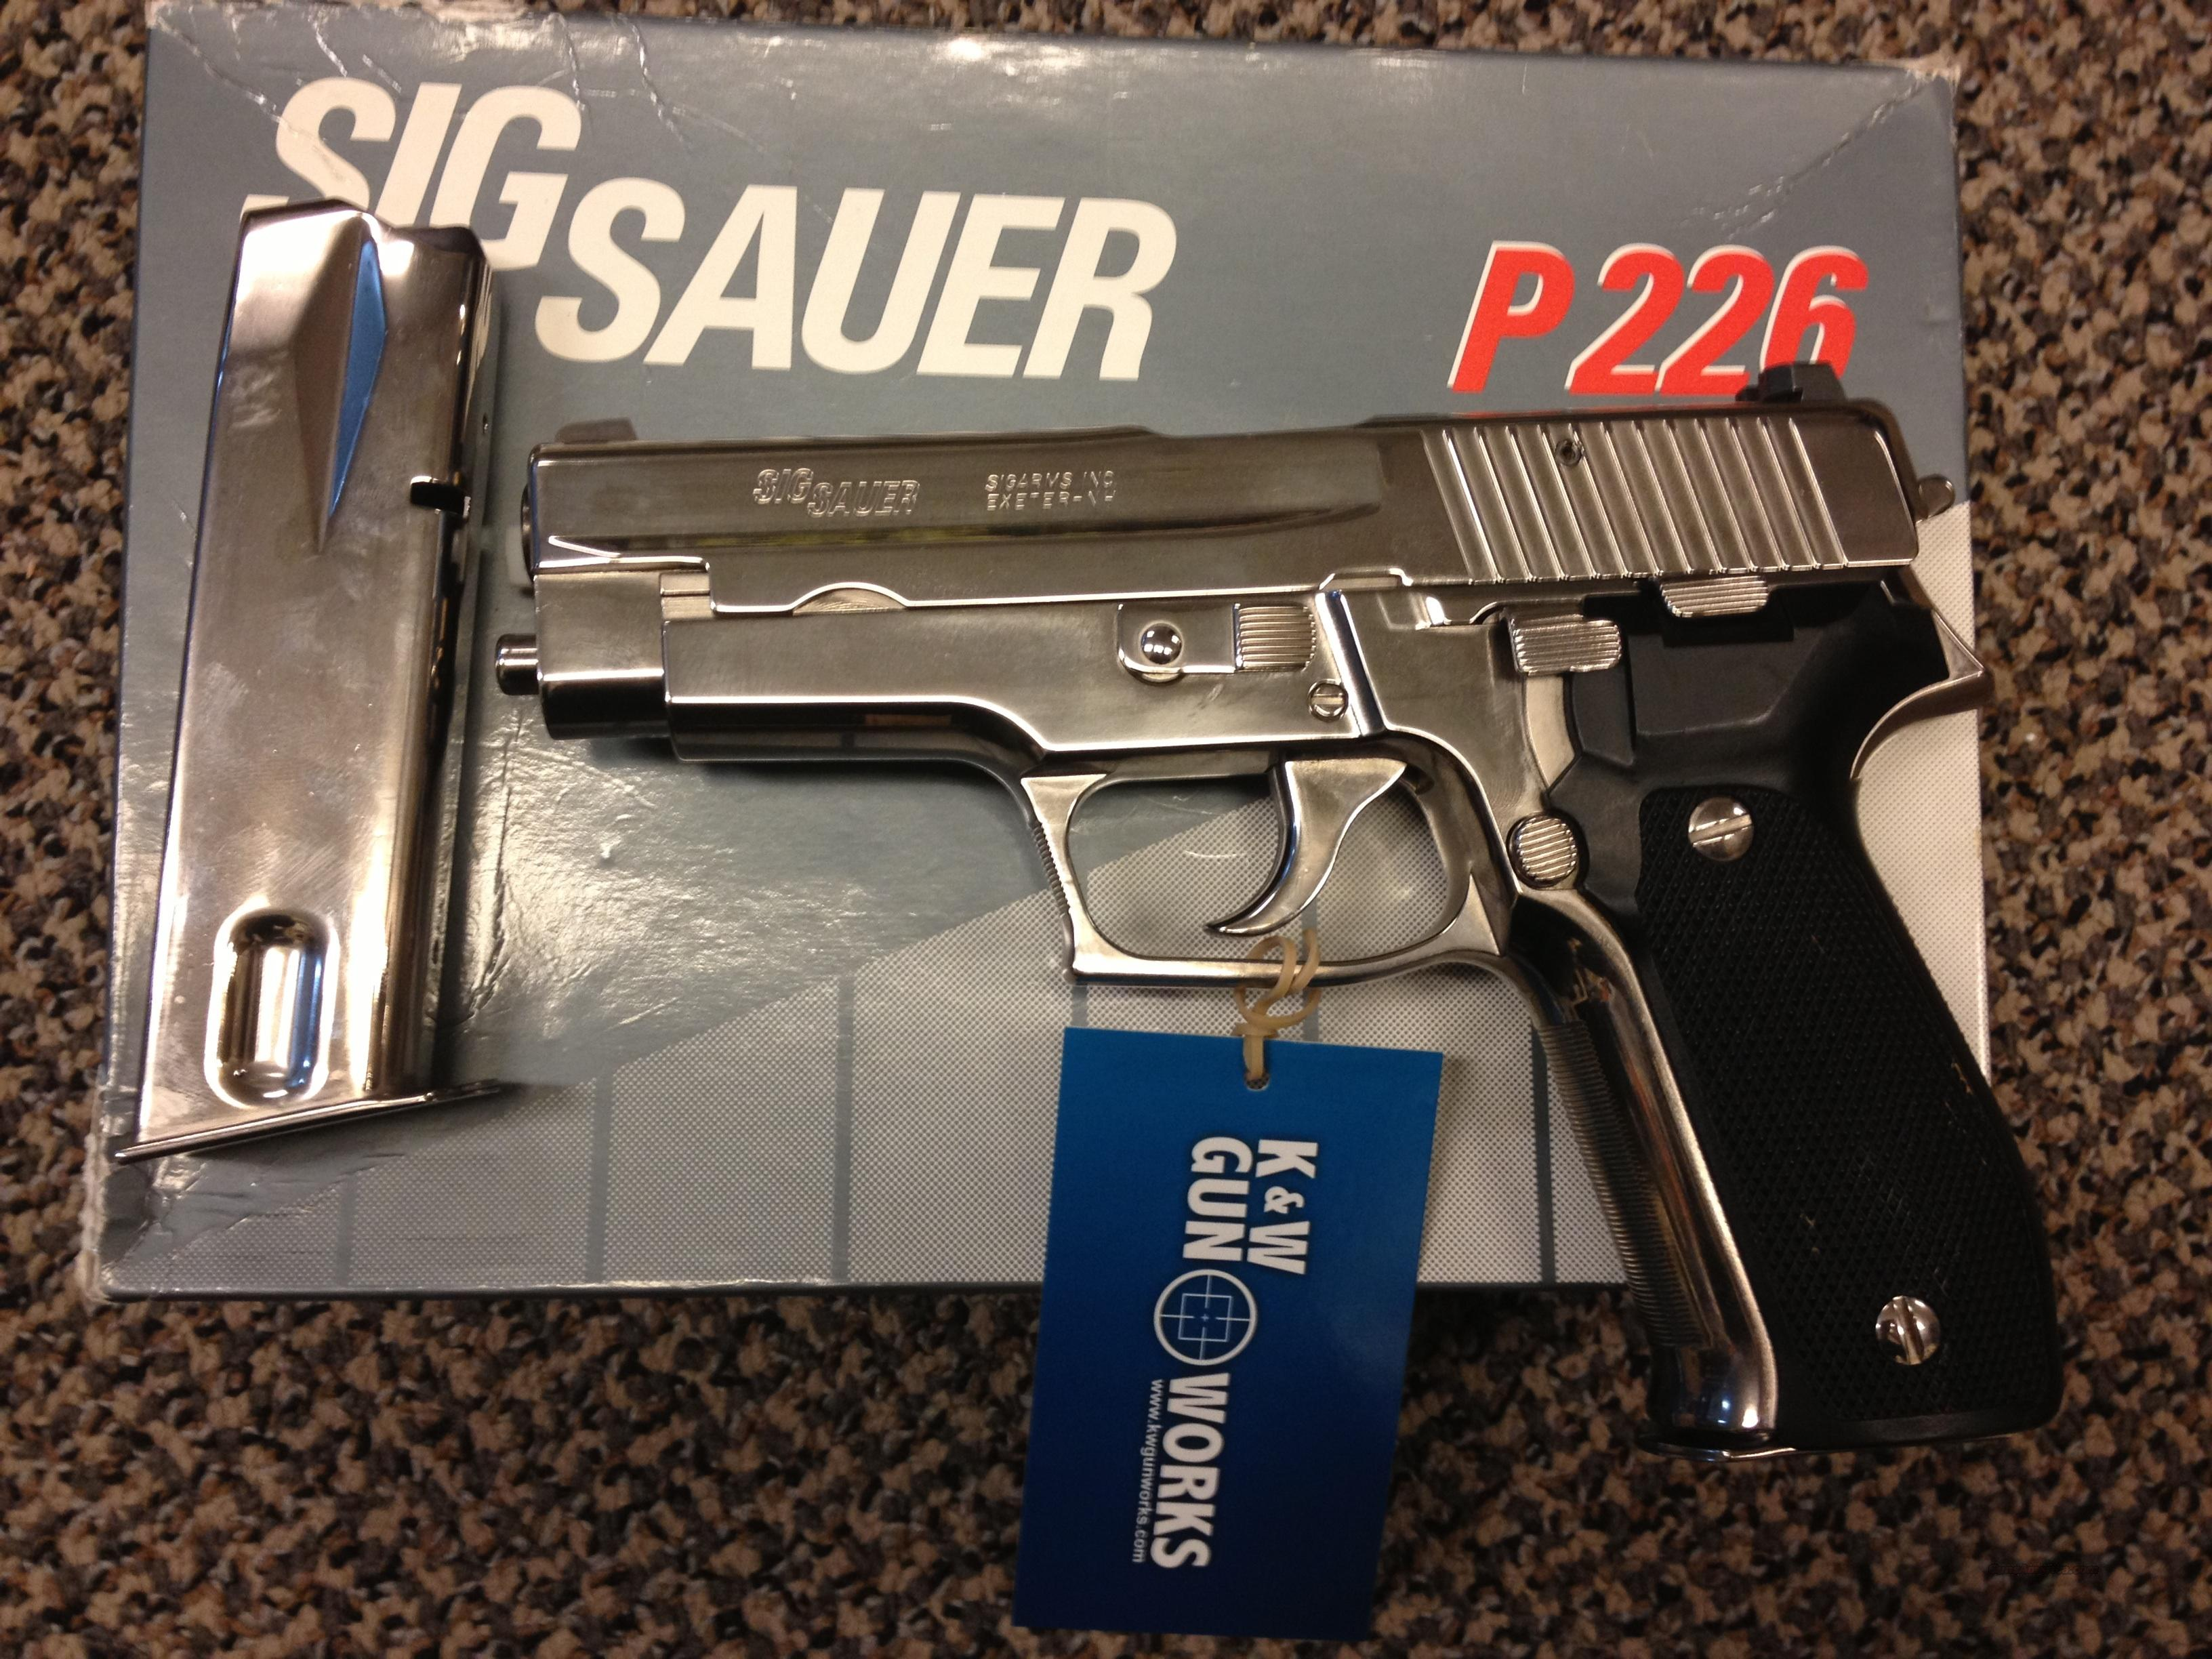 SIG SAUER P226 , NICKLE FINISH AT SIG SAUER  Guns > Pistols > Sig - Sauer/Sigarms Pistols > P226